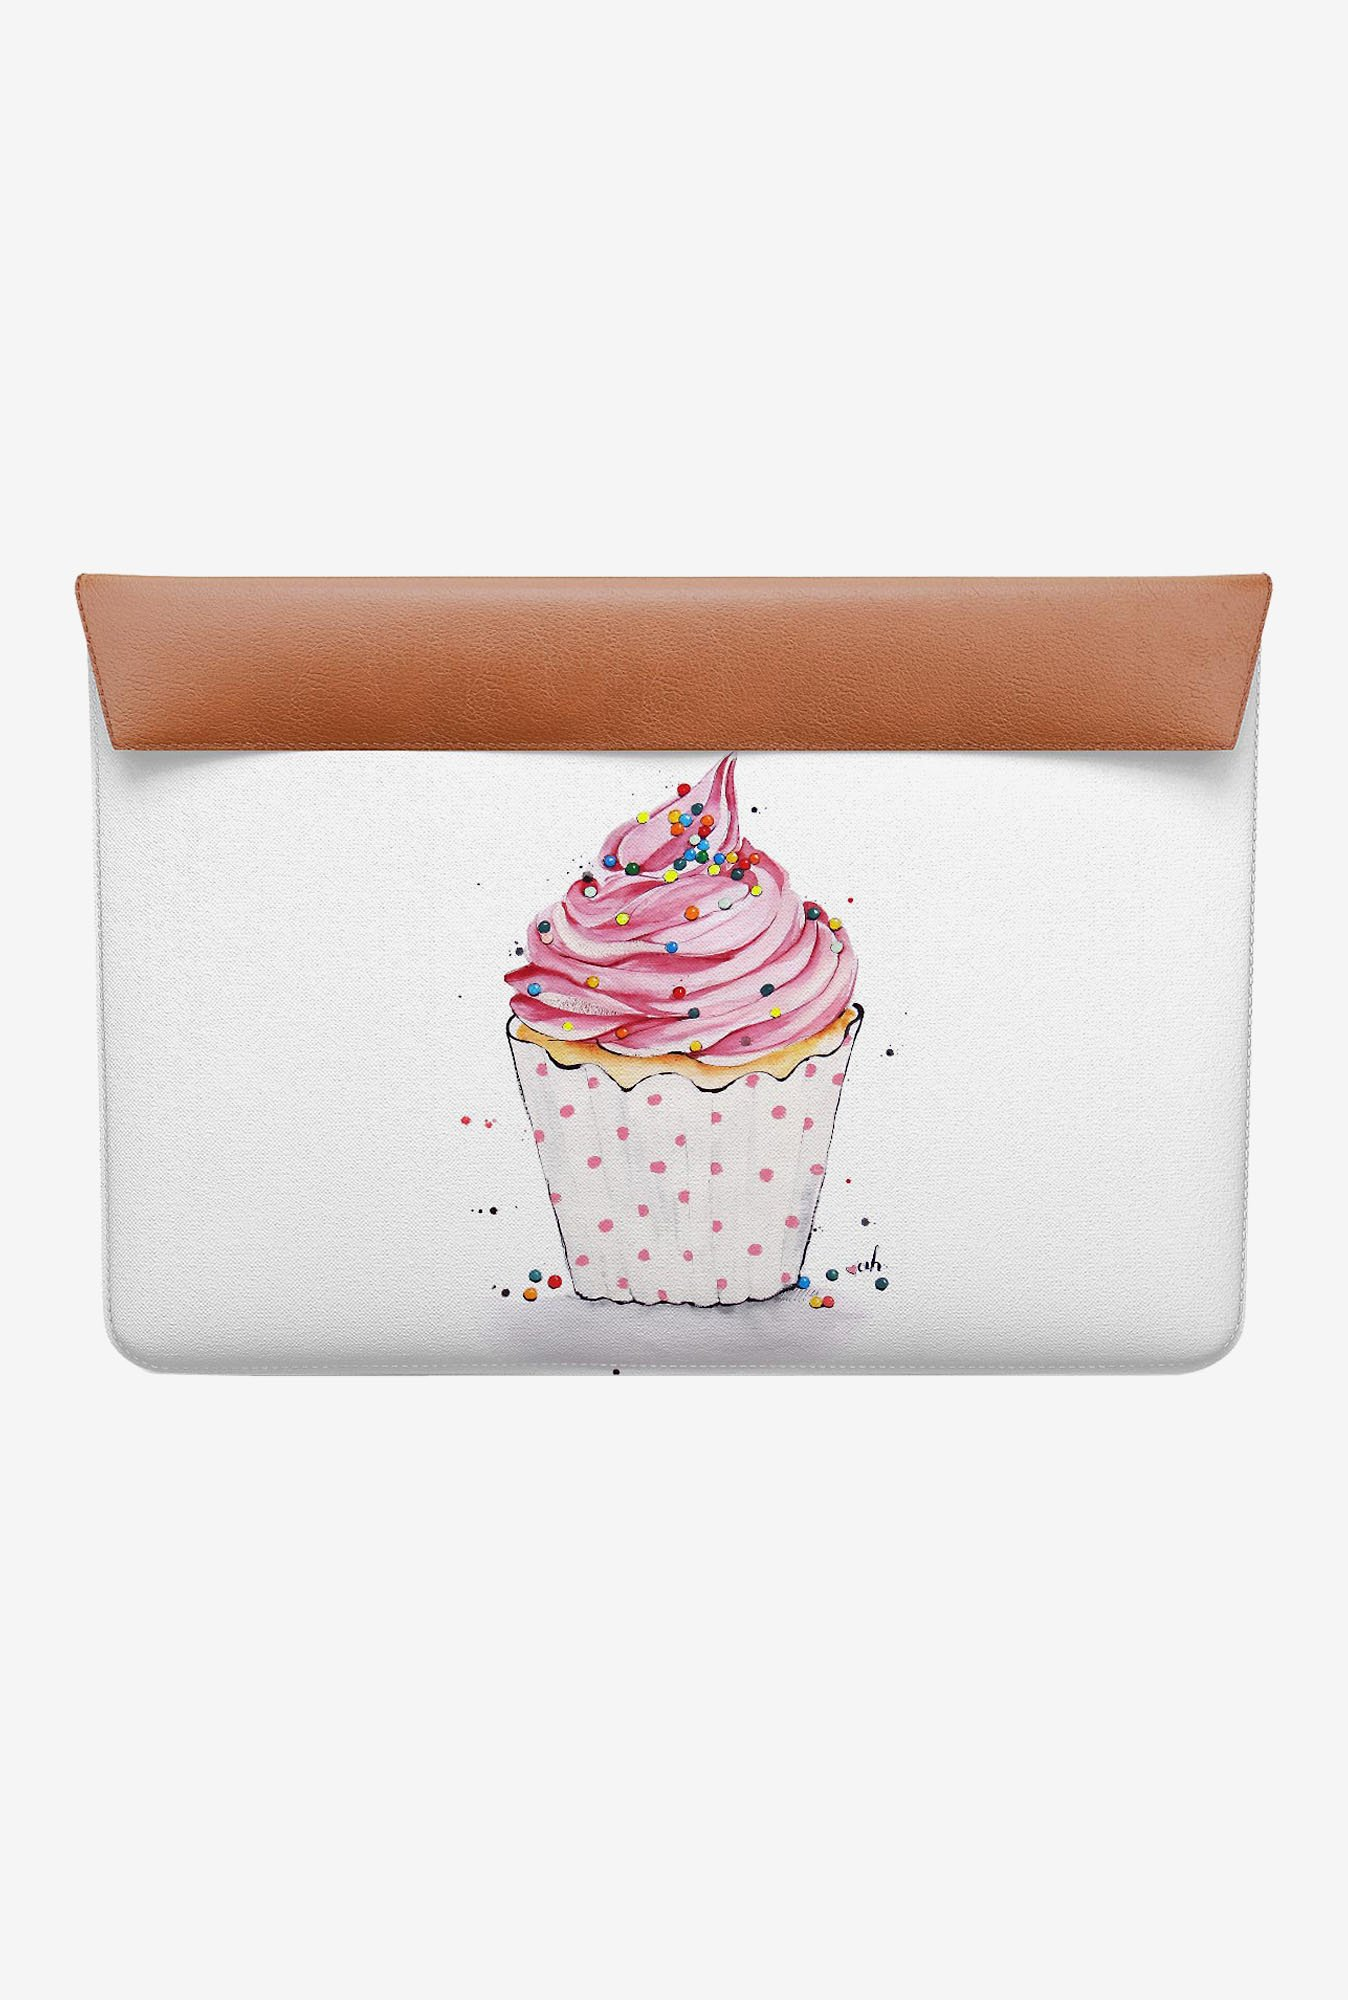 DailyObjects Mighty Dots MacBook Air 11 Envelope Sleeve